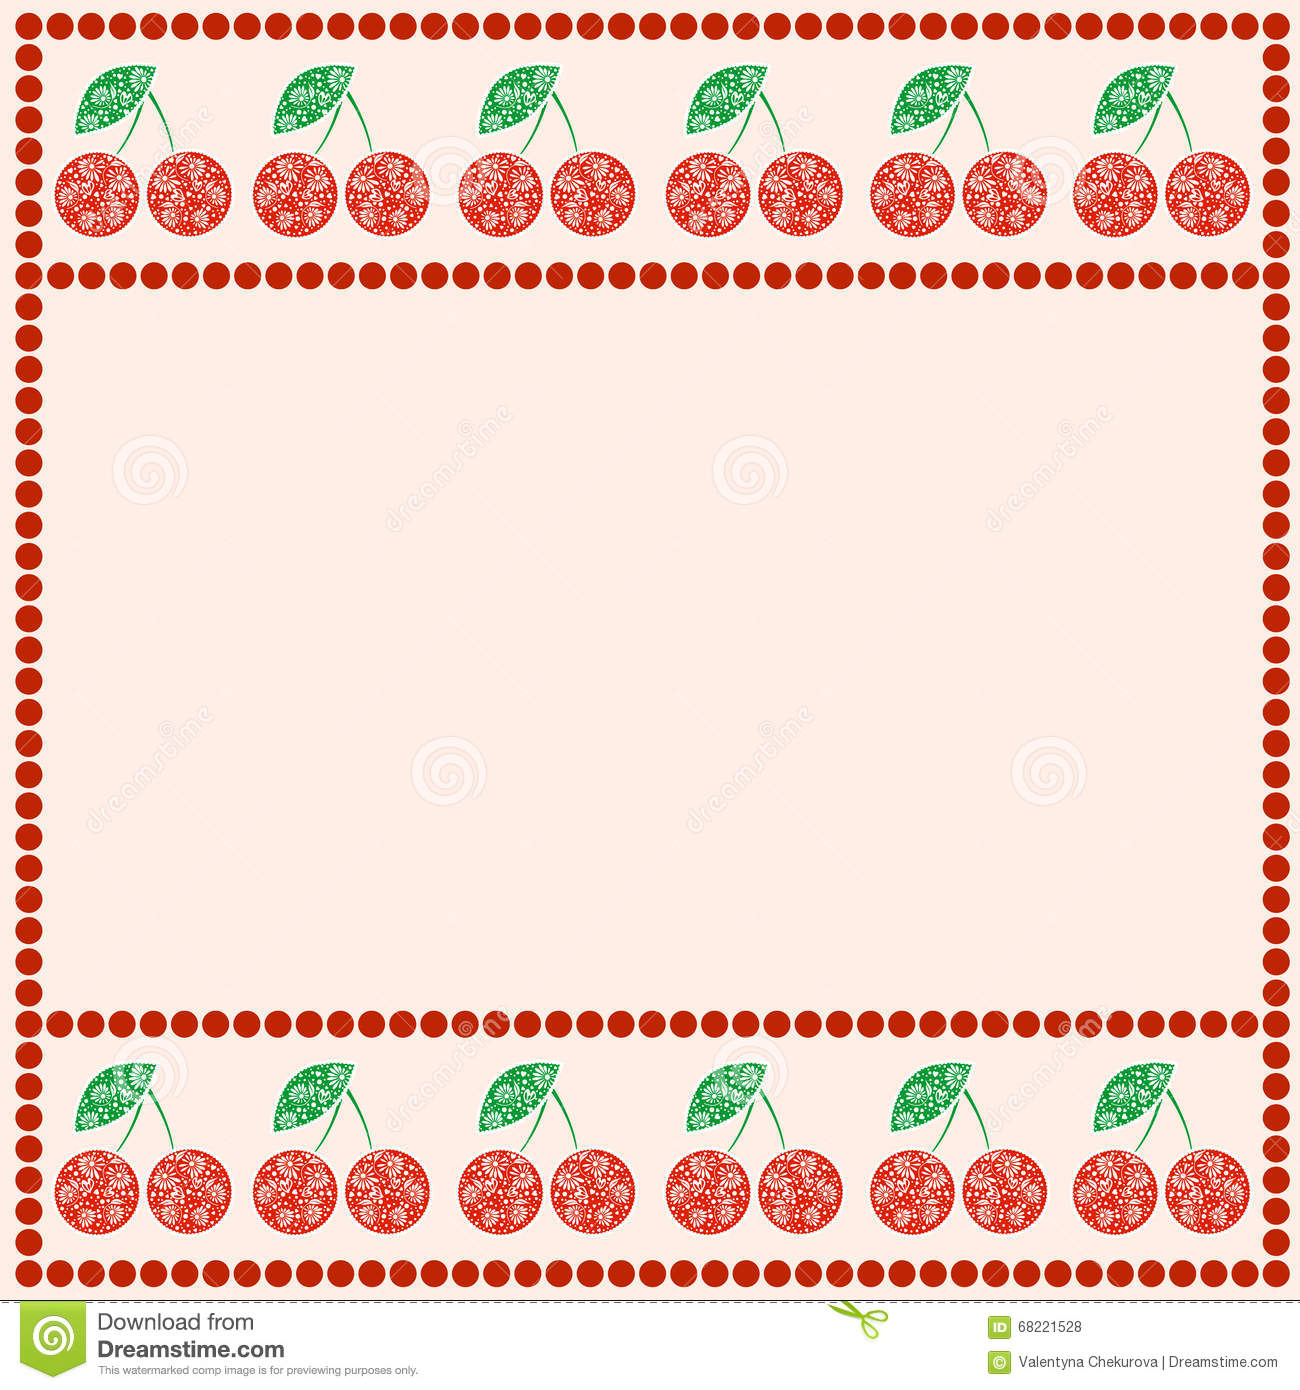 Vector Card With Berries. Empty Square Form With Ornamental.